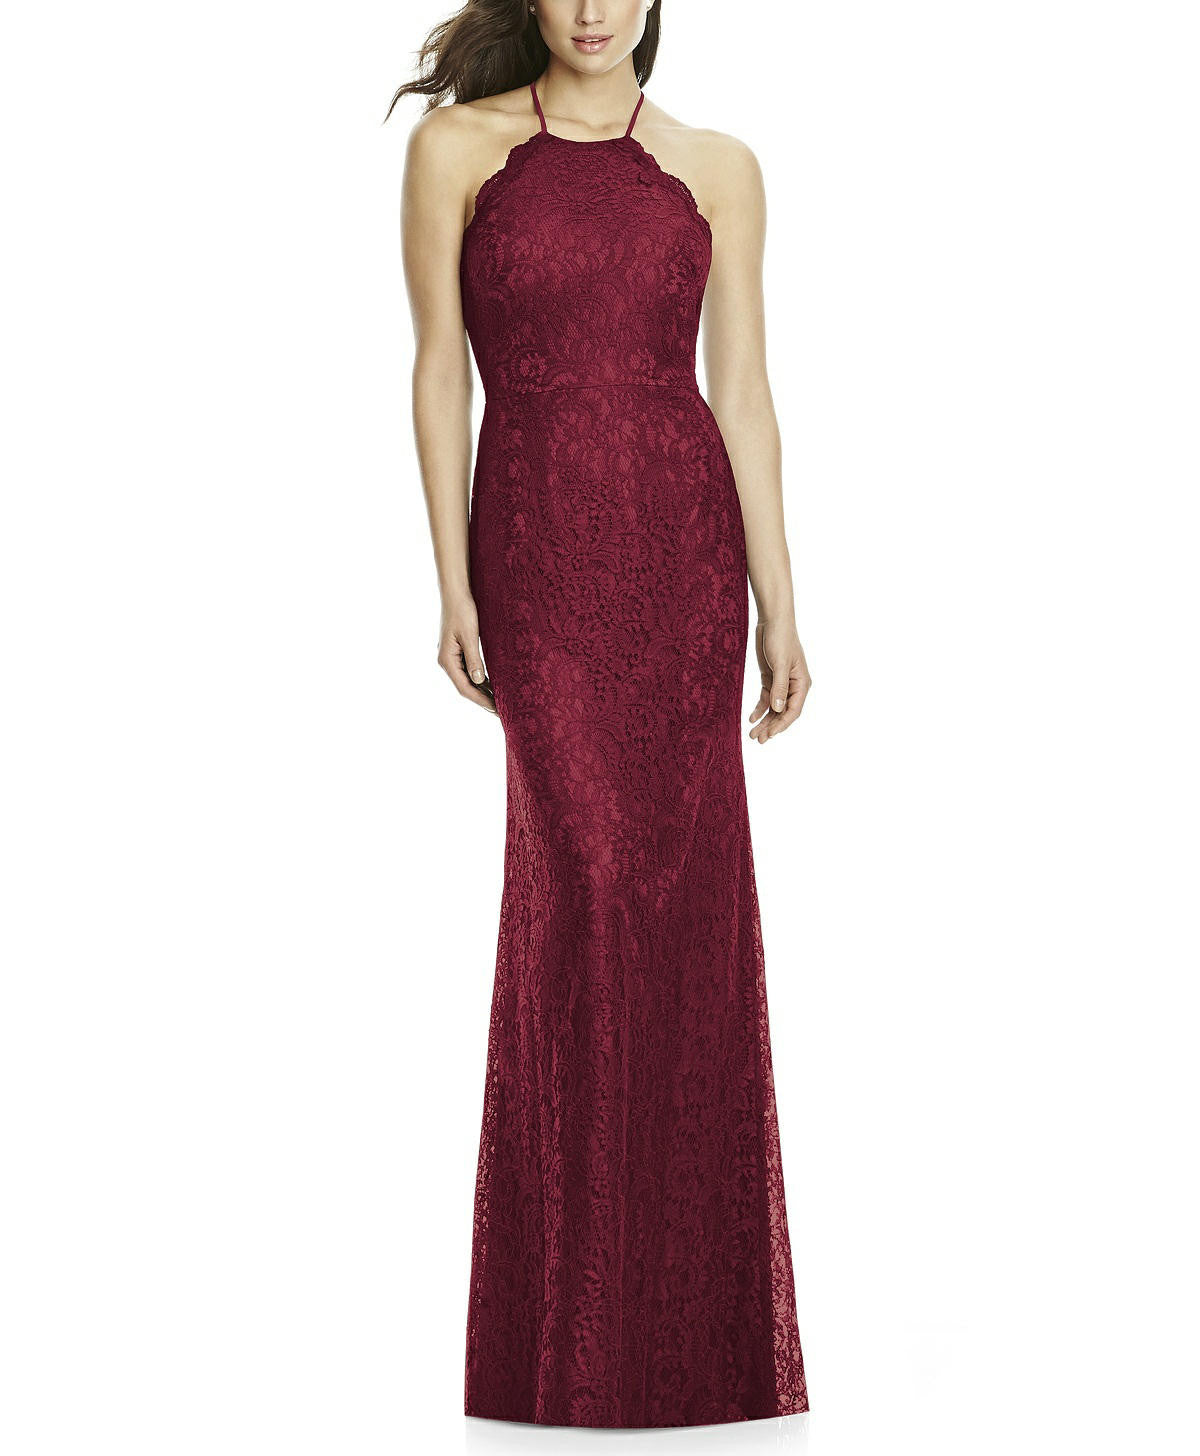 Dessy collection style 2995 bridesmaid dress brideside dessy collection style 2995 ombrellifo Gallery